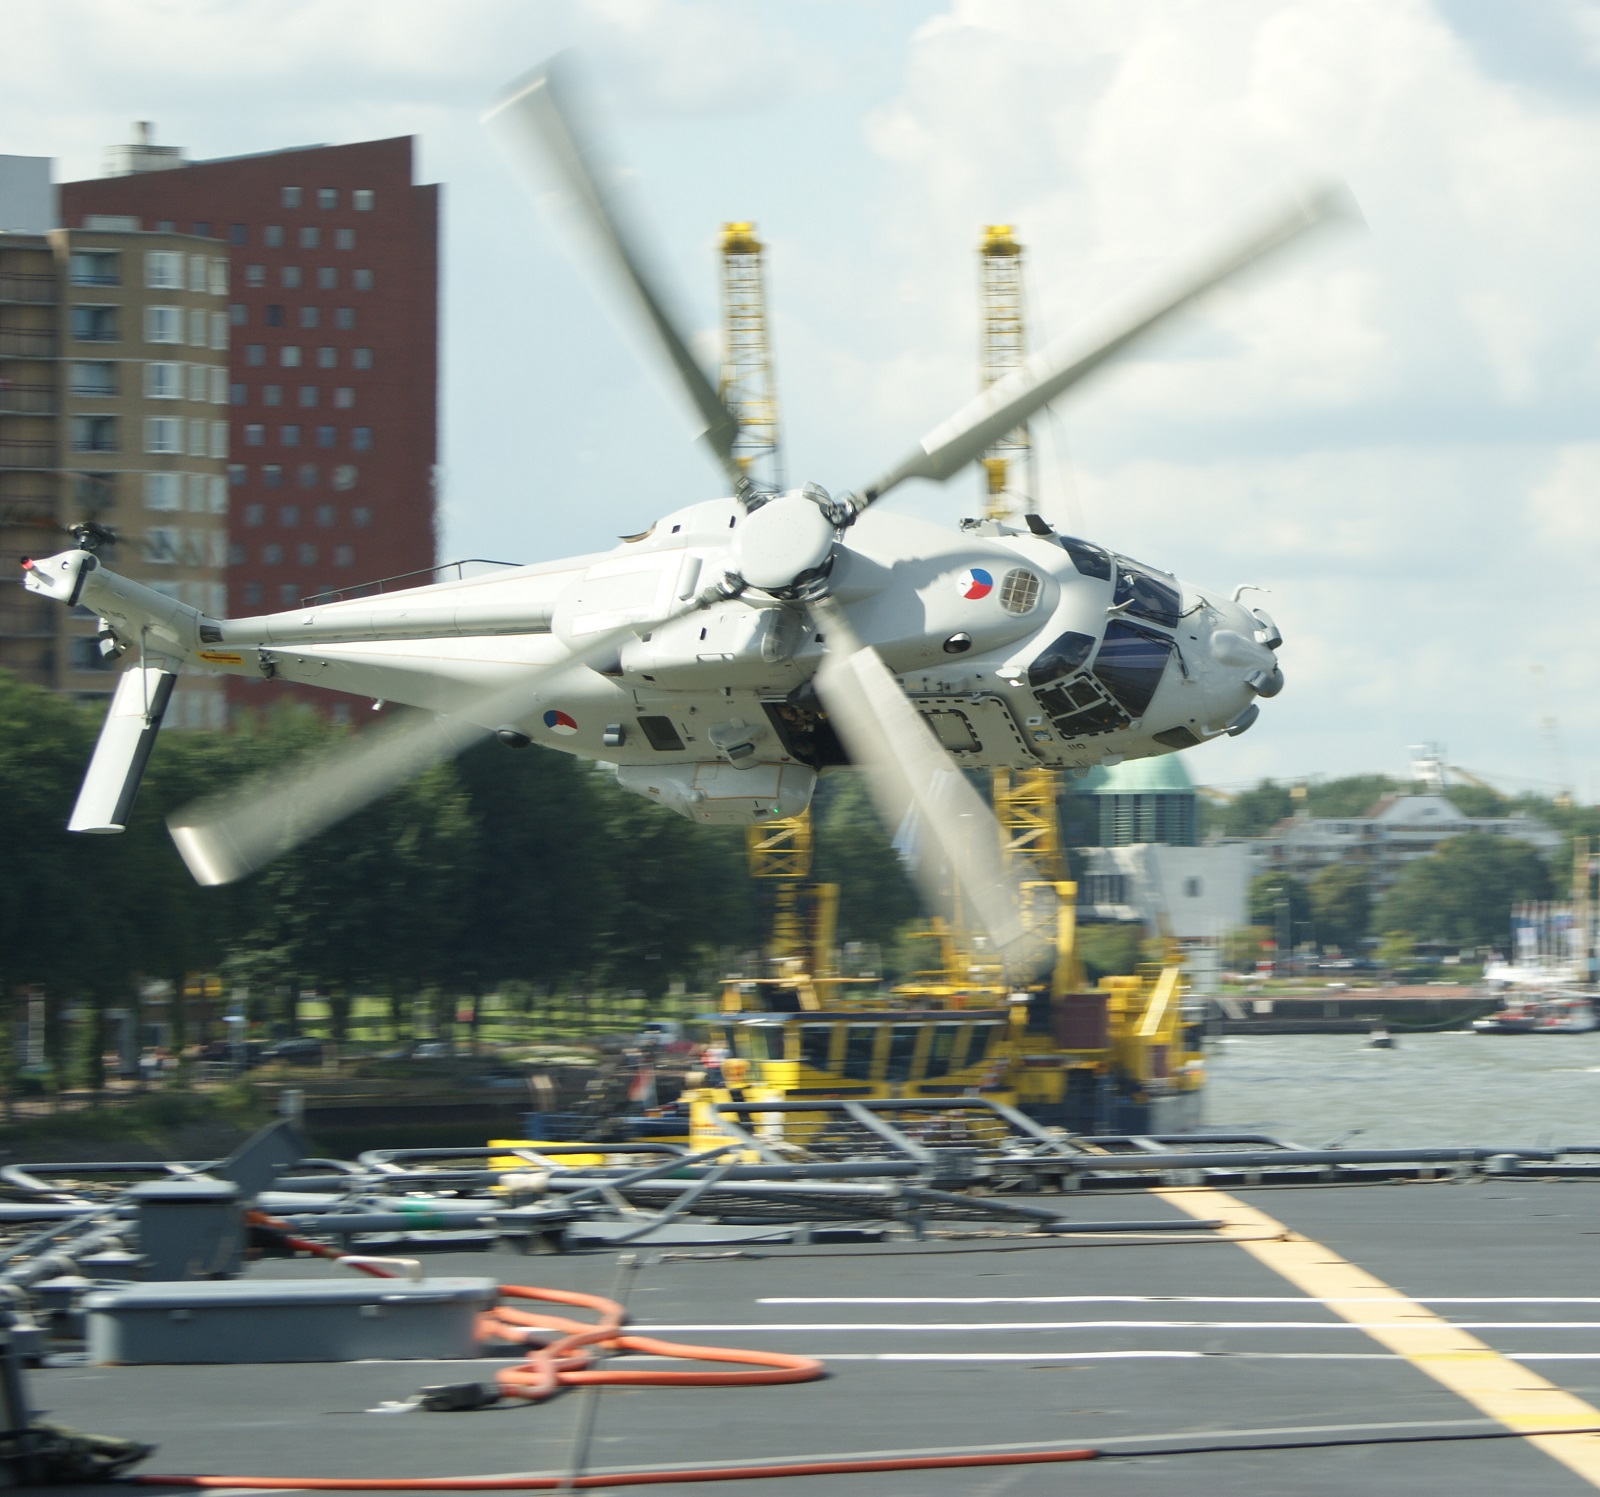 NHI NH-90 NFH N-110 860sq Netherlands - Navy